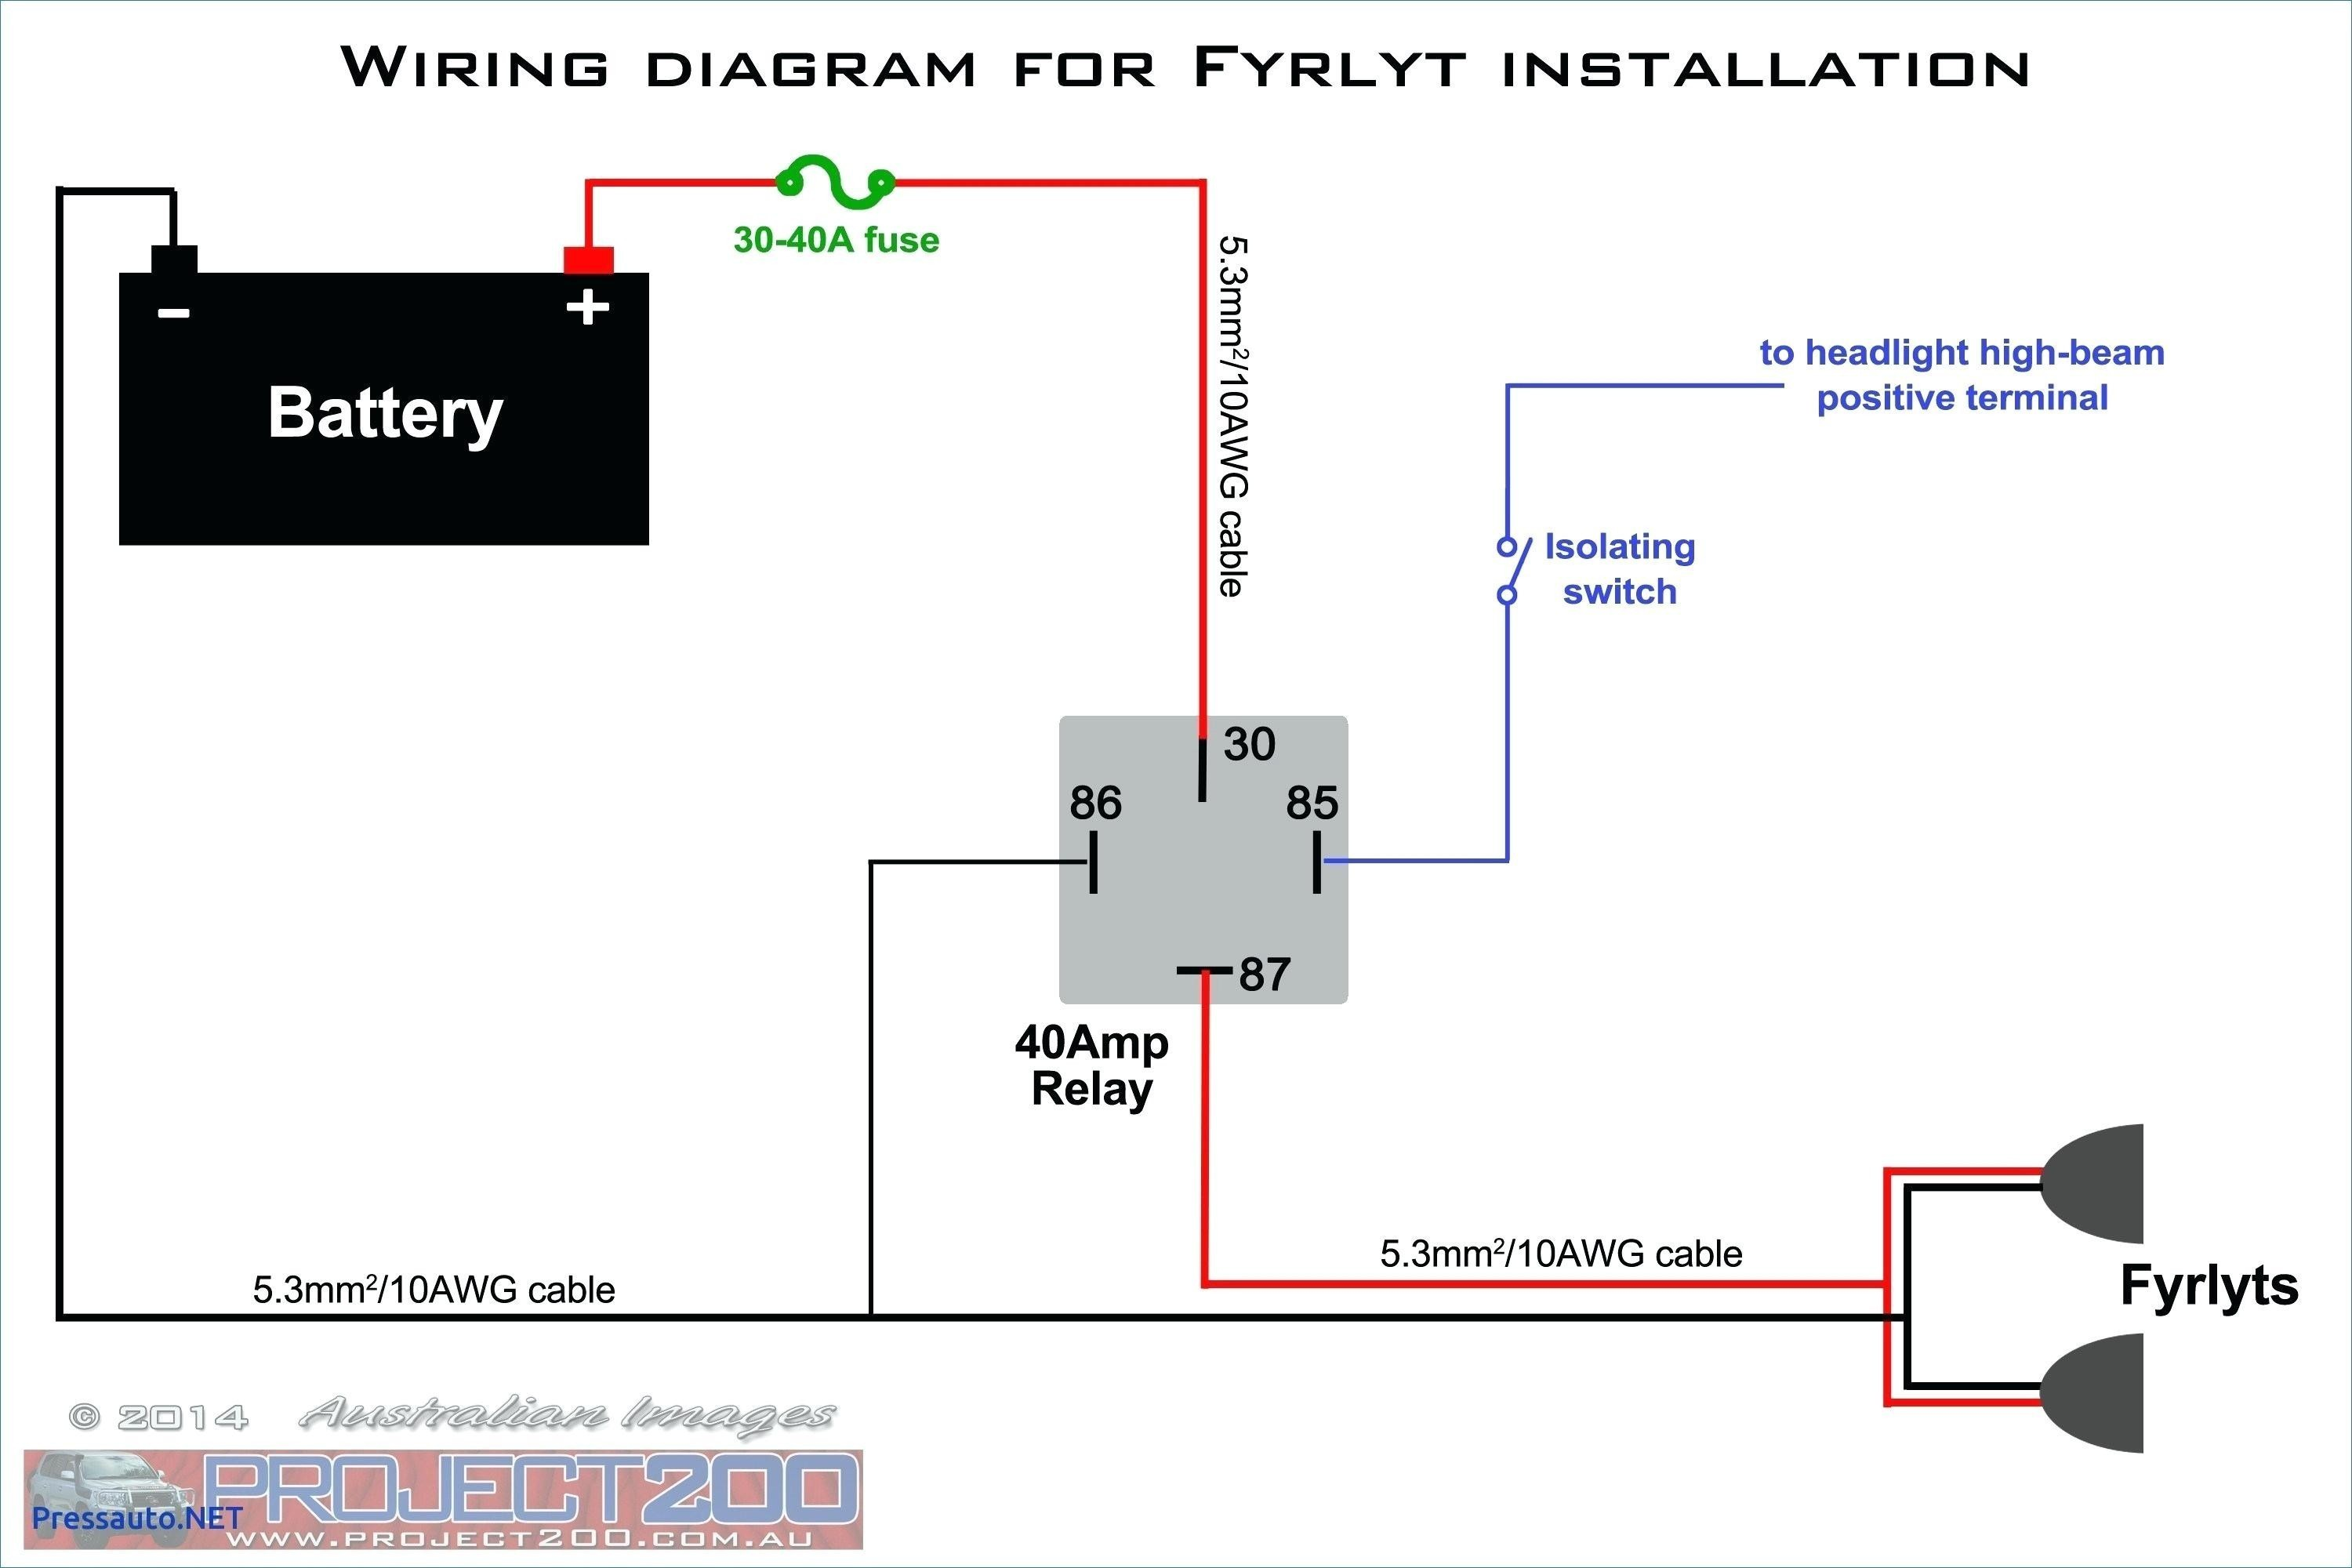 Wiring Diagram for Hella 500 Driving Lights Fresh Wiring Diagram for Hella 500 Driving Lights Best